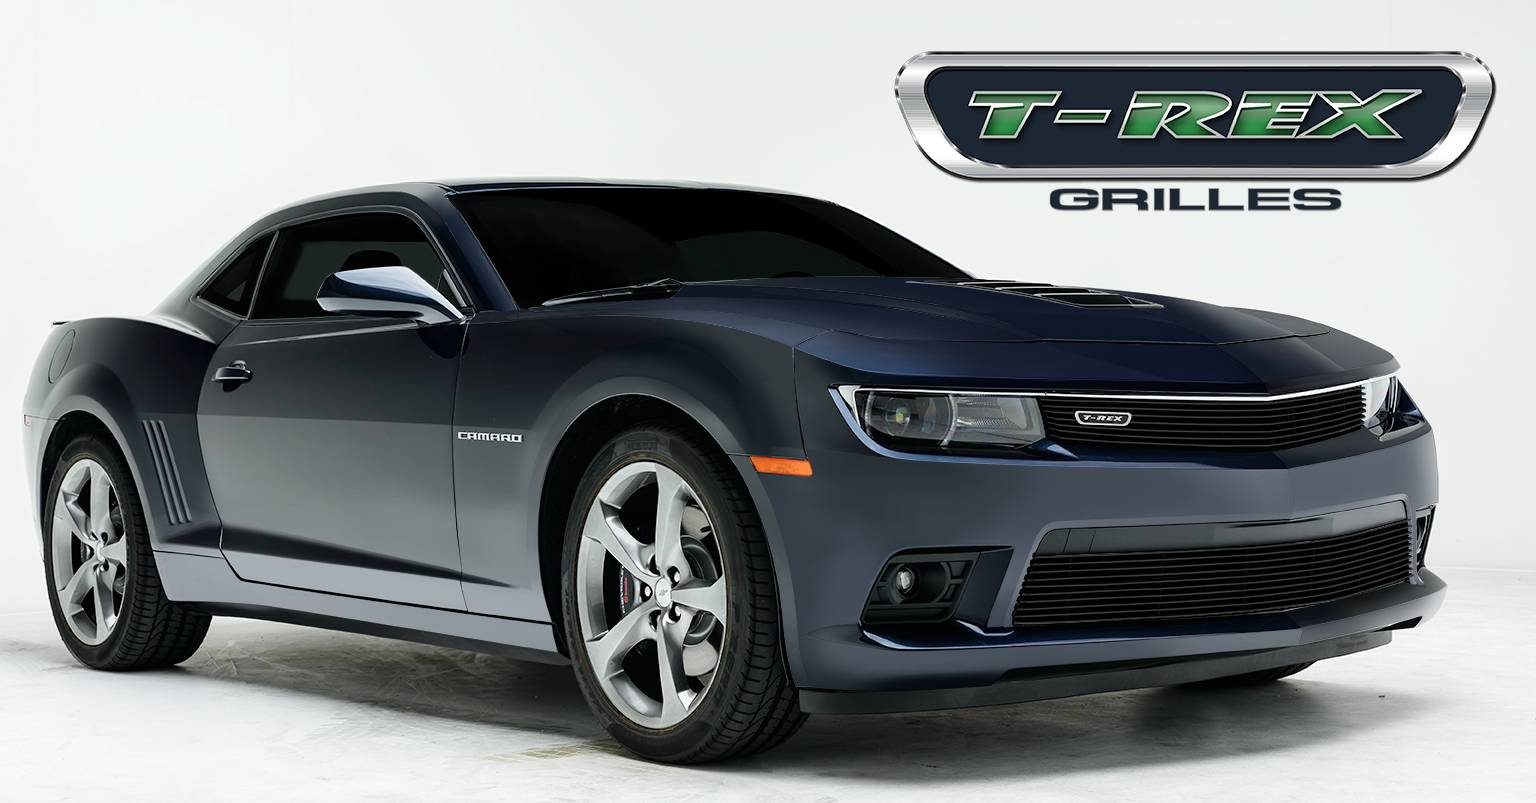 T-REX Chevrolet Camaro V8 Billet Grille, Bumper, Overlay, 1 Pc, Black Powdercoated Aluminum Bars - Pt # 25032B